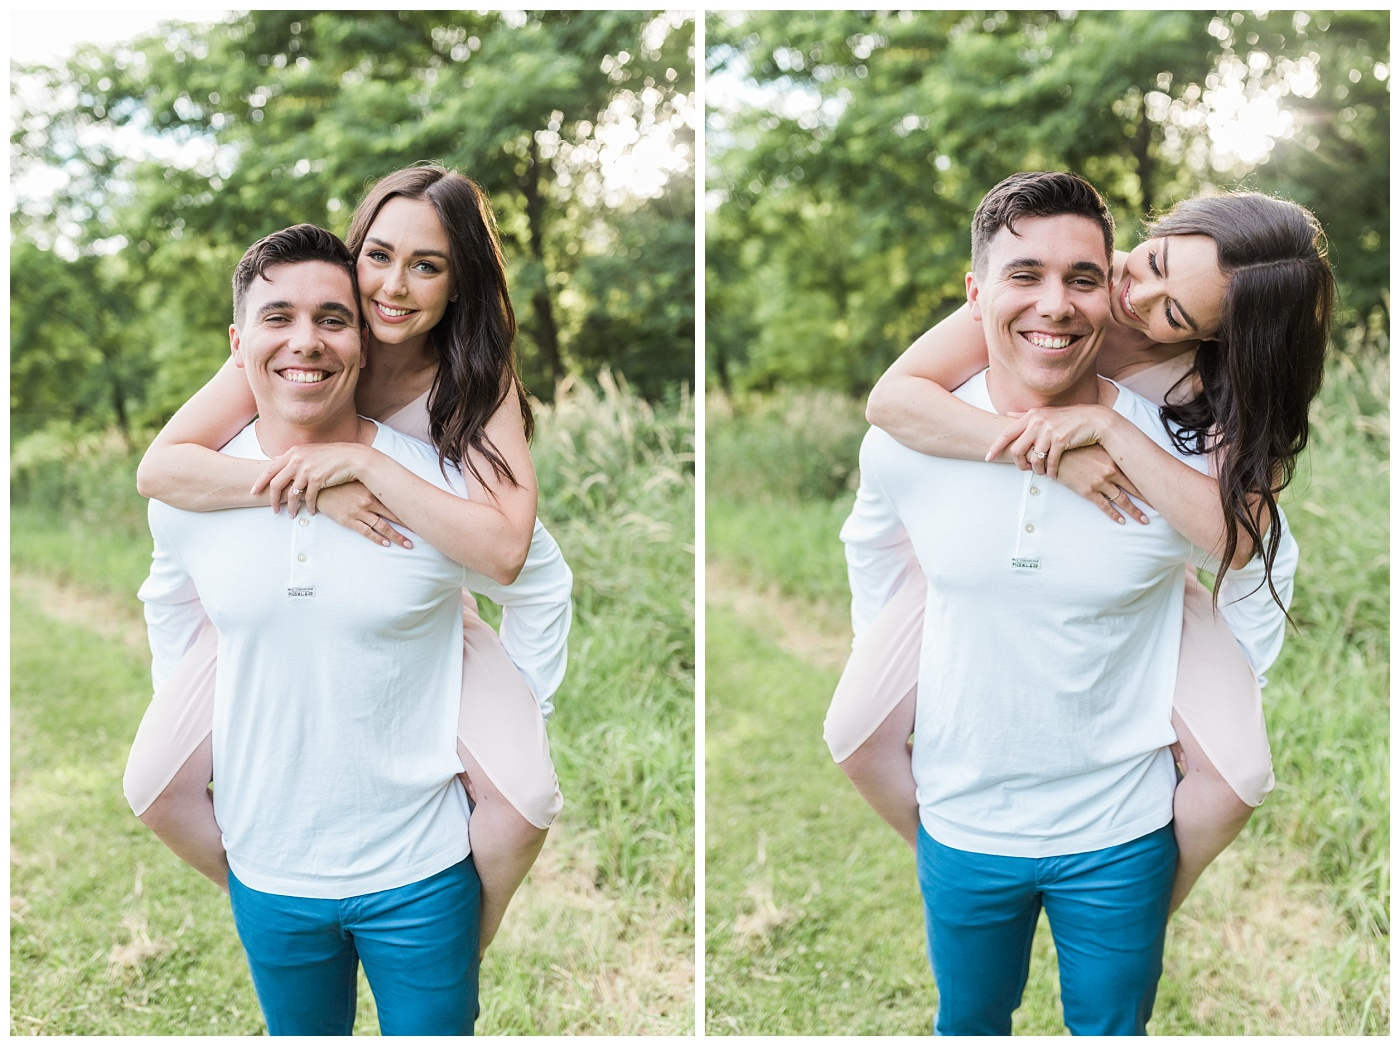 Stephanie Marie Photography Lake McBride Dockside Engagement Session Iowa City Wedding Photographer Madison Sean_0008.jpg